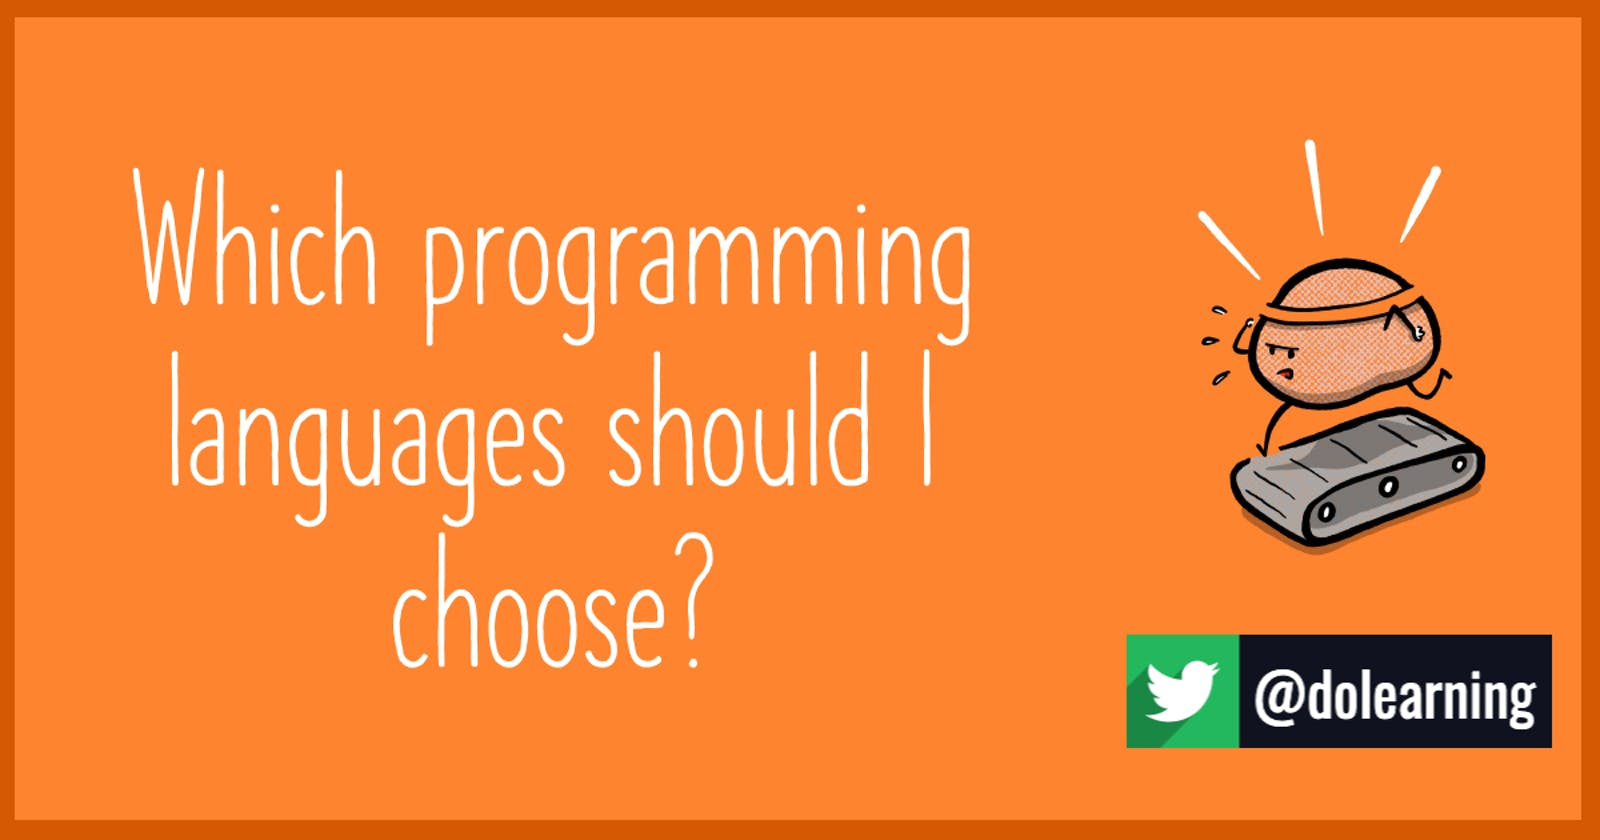 Which programming language should I choose?